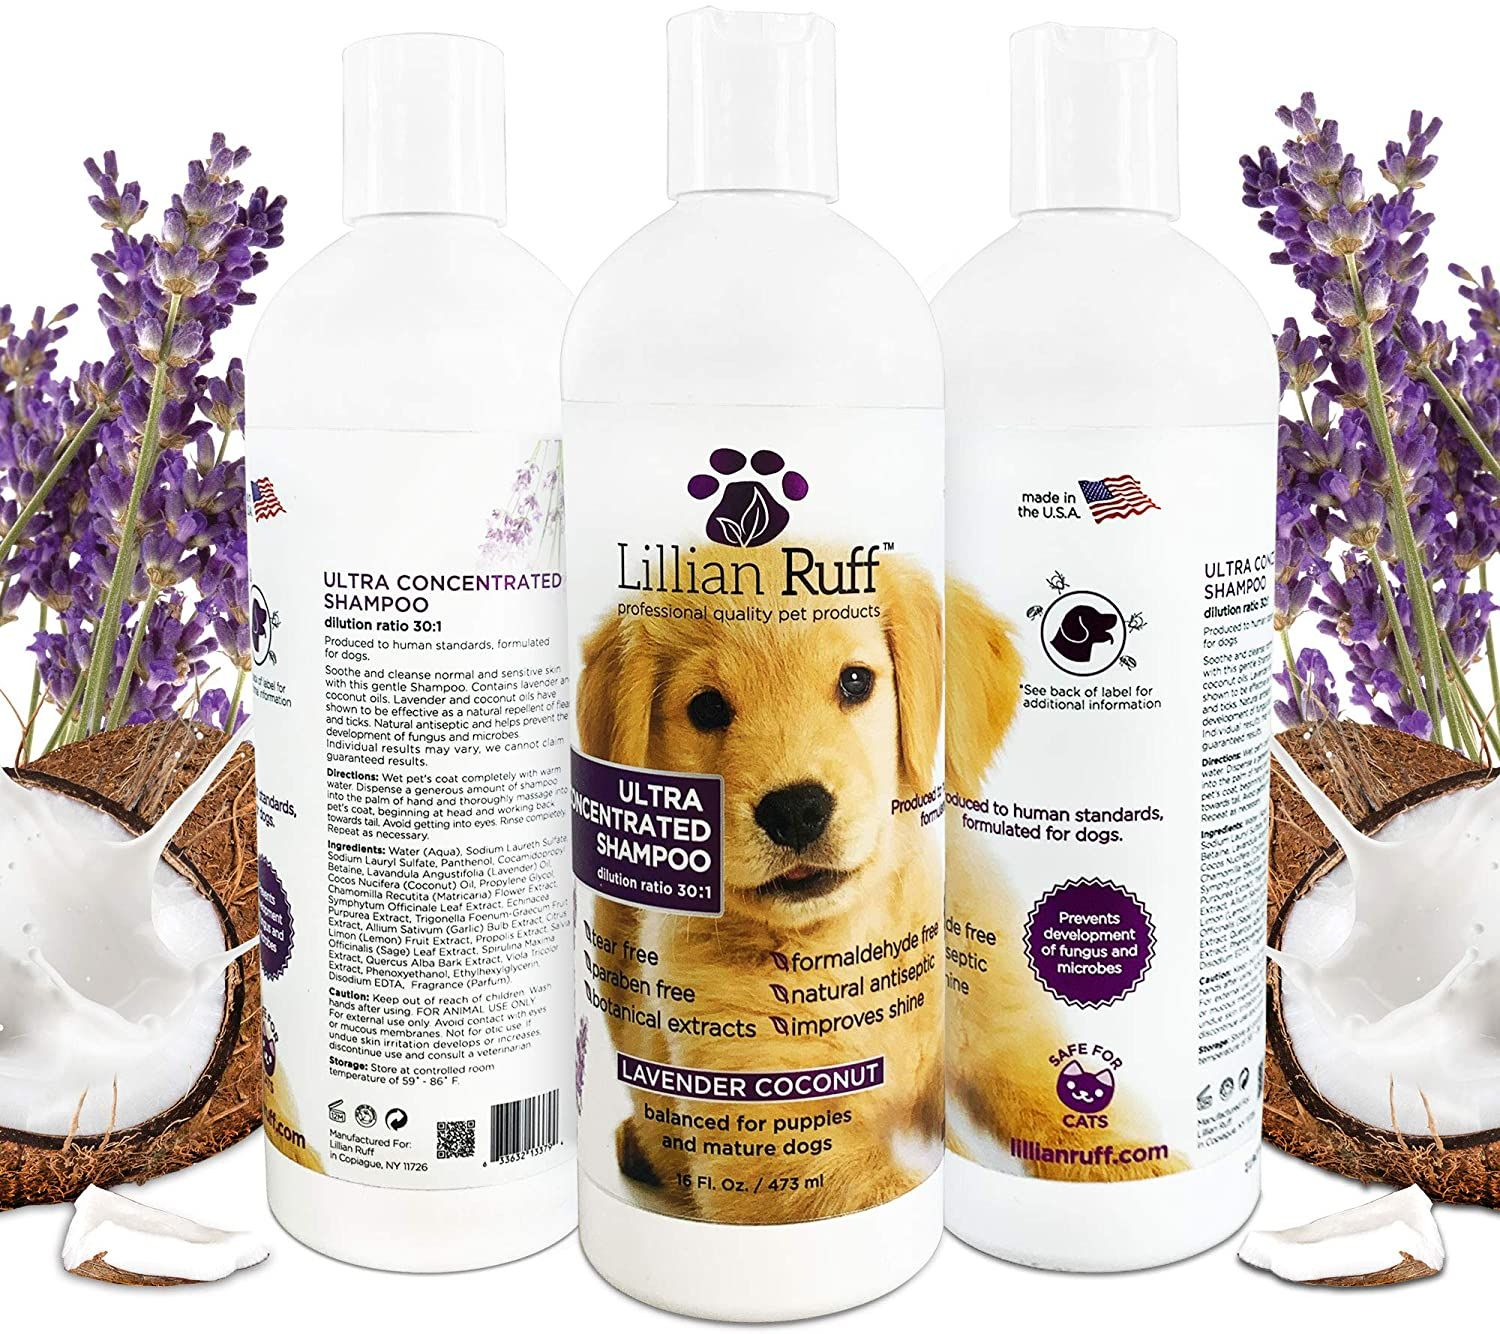 Lovely Fresh Premium Natural Dog Shampoo 3 In 1 Formula With Oatmeal And Neem Relieves Skin Irritation Moisturizes And Conditions Keeps Insects Away For Natural Dog Shampoo Dog Shampoo Oatmeal Dog Shampoo